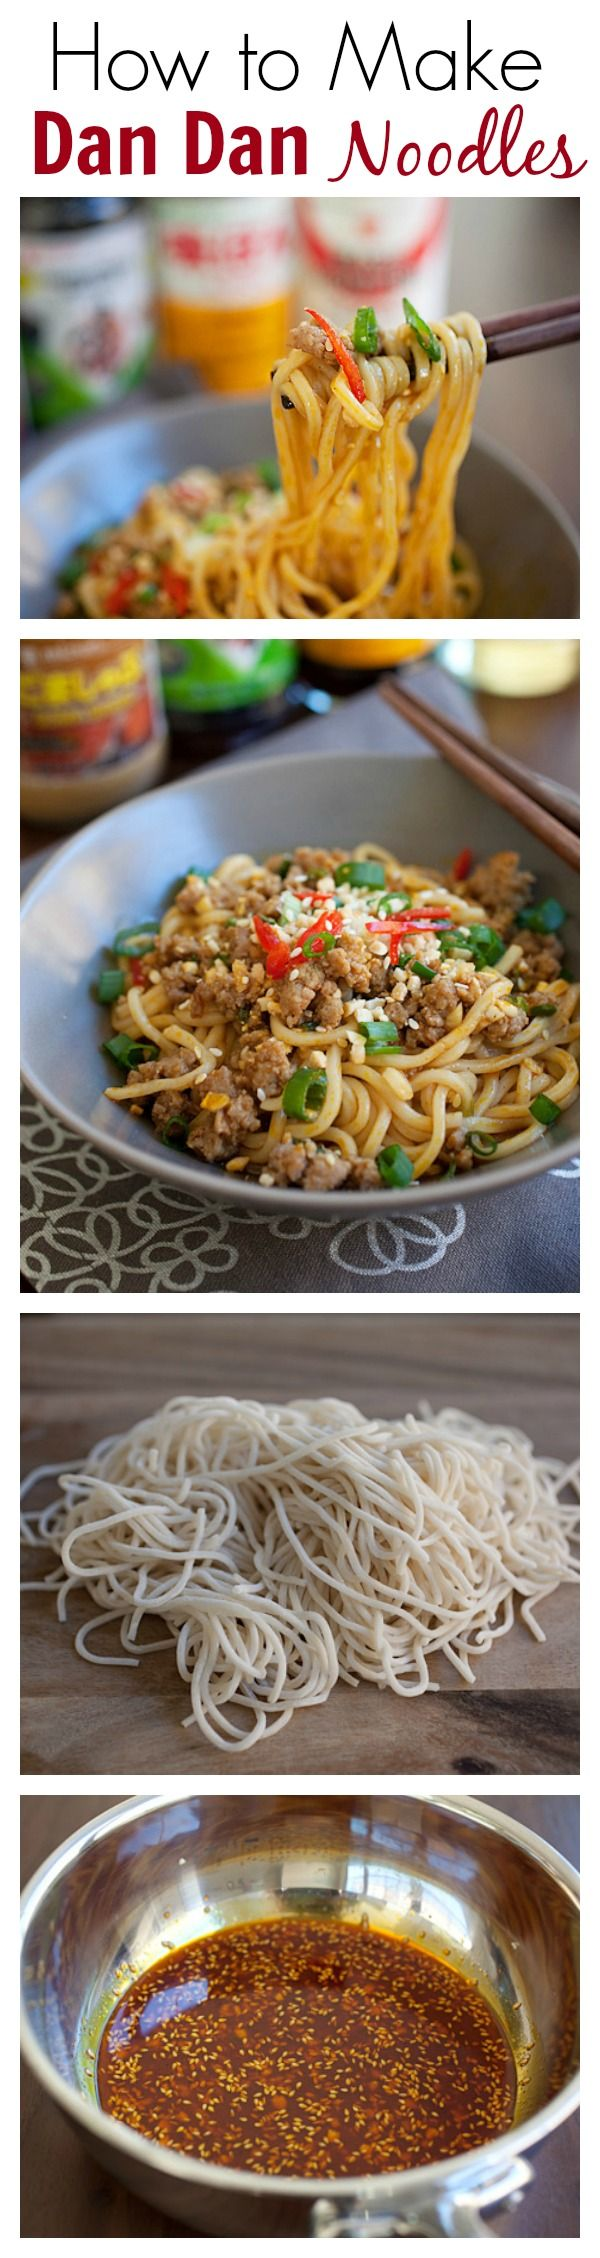 ... dan dan noodles how to make sichuan dan dan noodles dan dan noodles